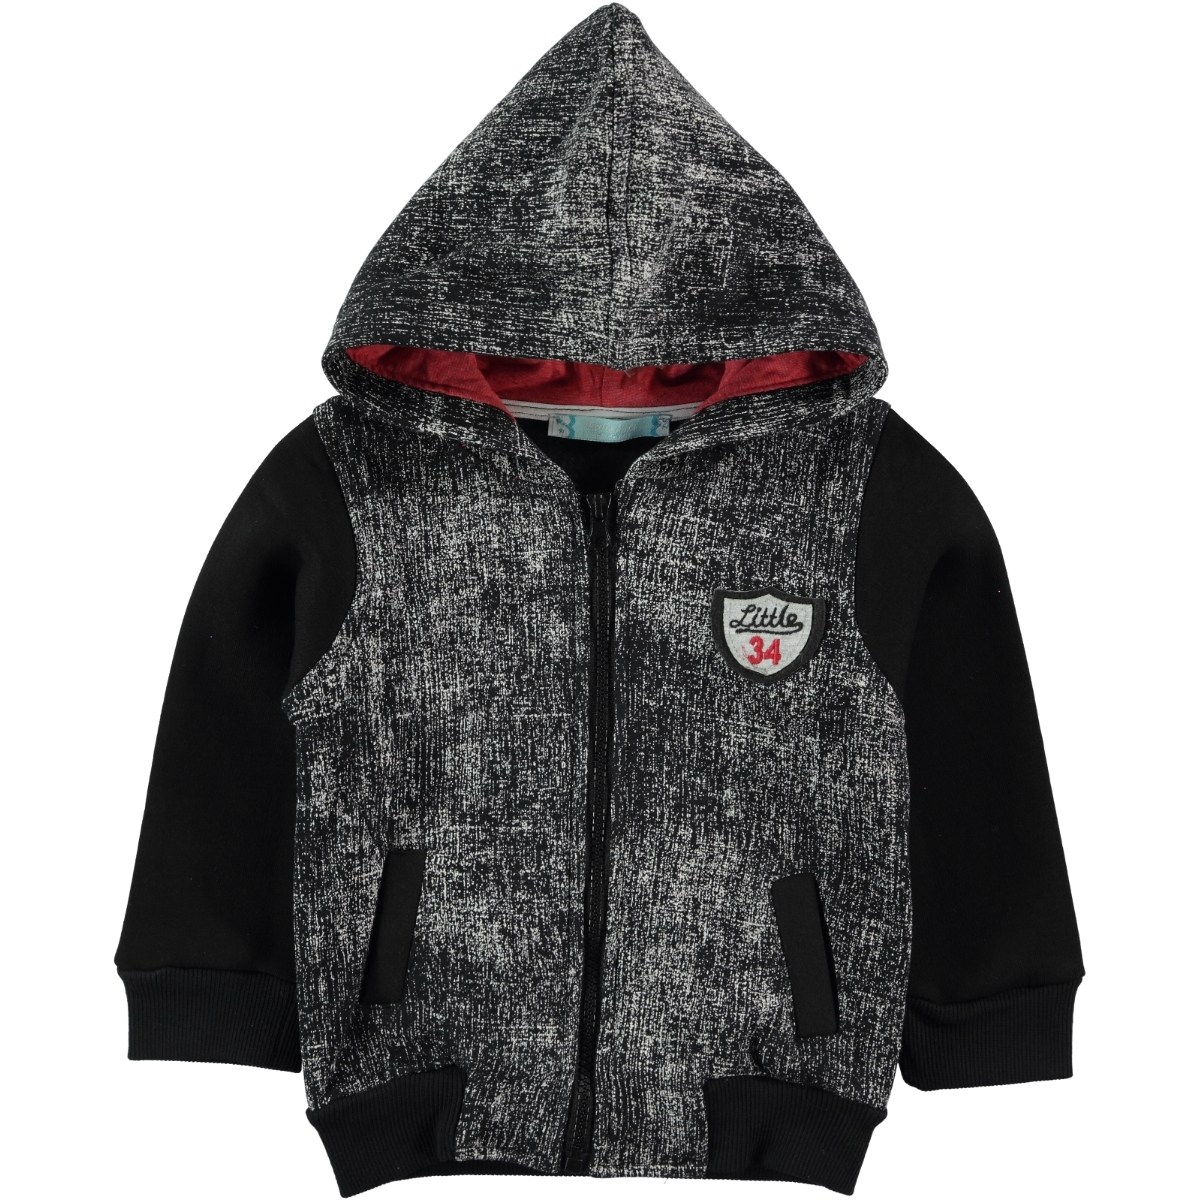 Haliş Boy Hooded Cardigan Black 2-5 Years